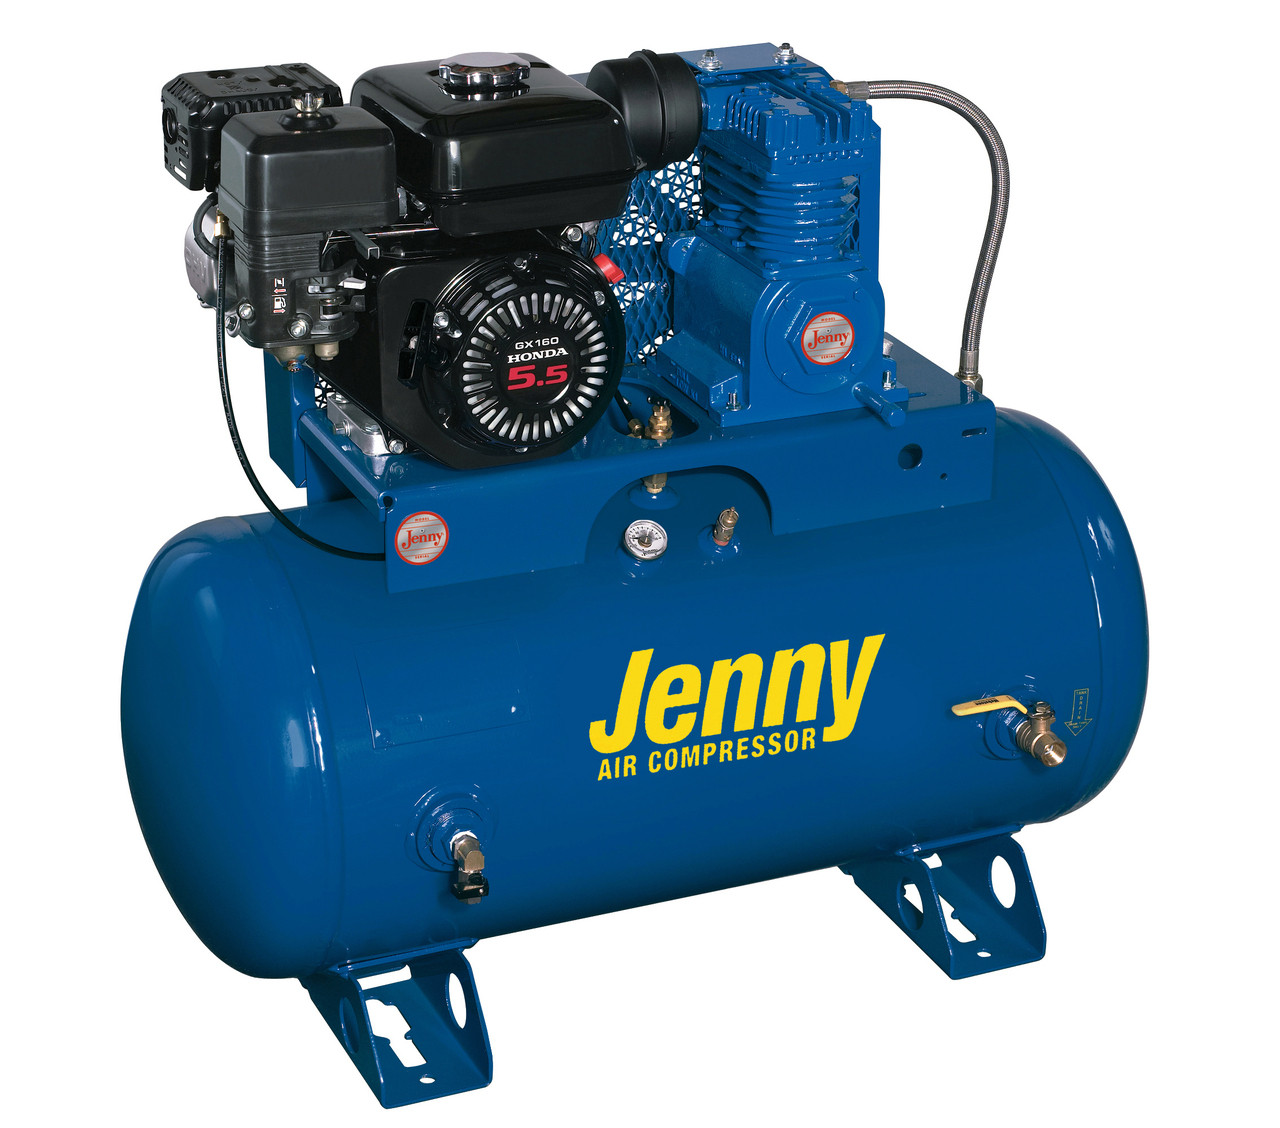 Jenny K5HGA-30T 5.5 HP Gasoline Driven Single Stage 30 Gallon Air Compressor